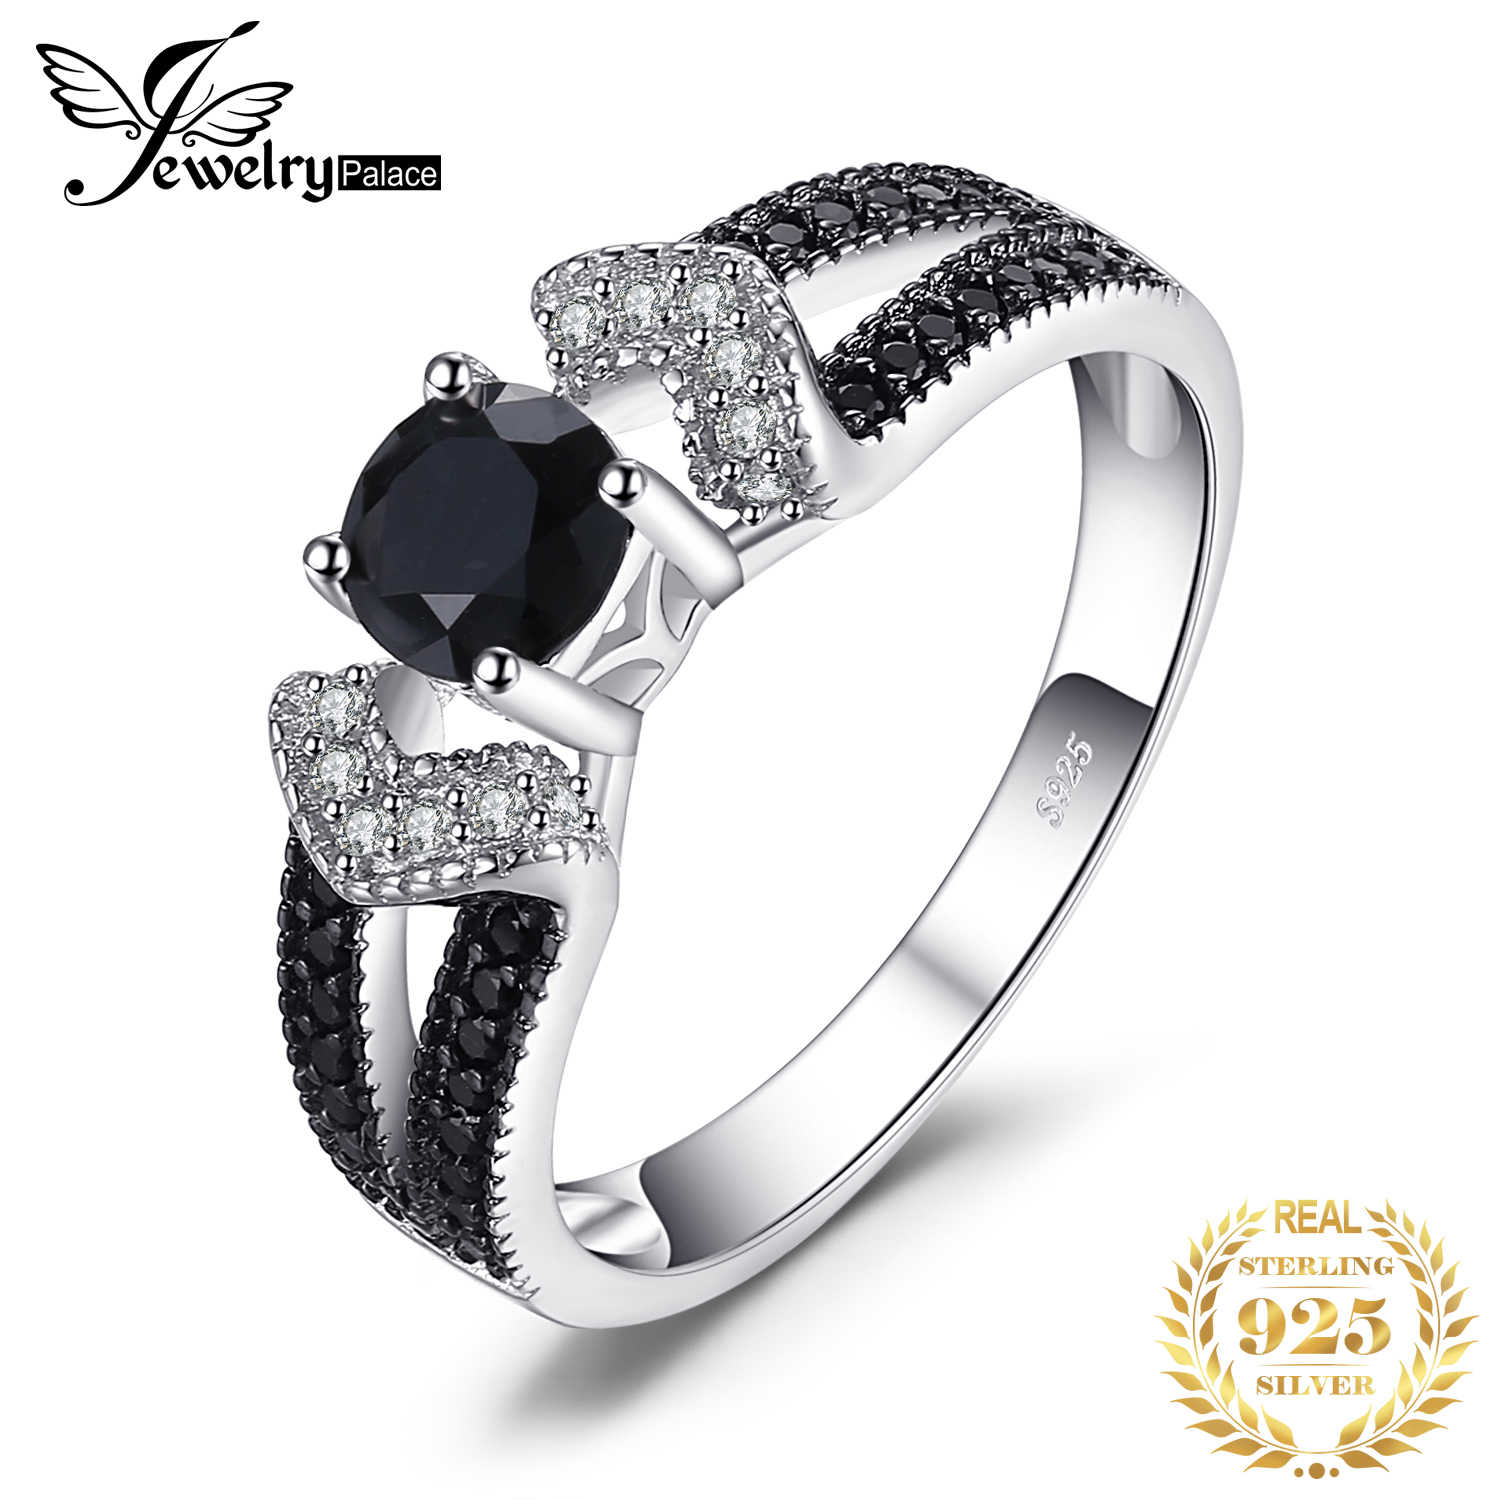 JewelryPalace Natural Black Spinel Statement Rings Authentic 925 Sterling Silver Rings for Women Wedding Engagement Fine Jewelry